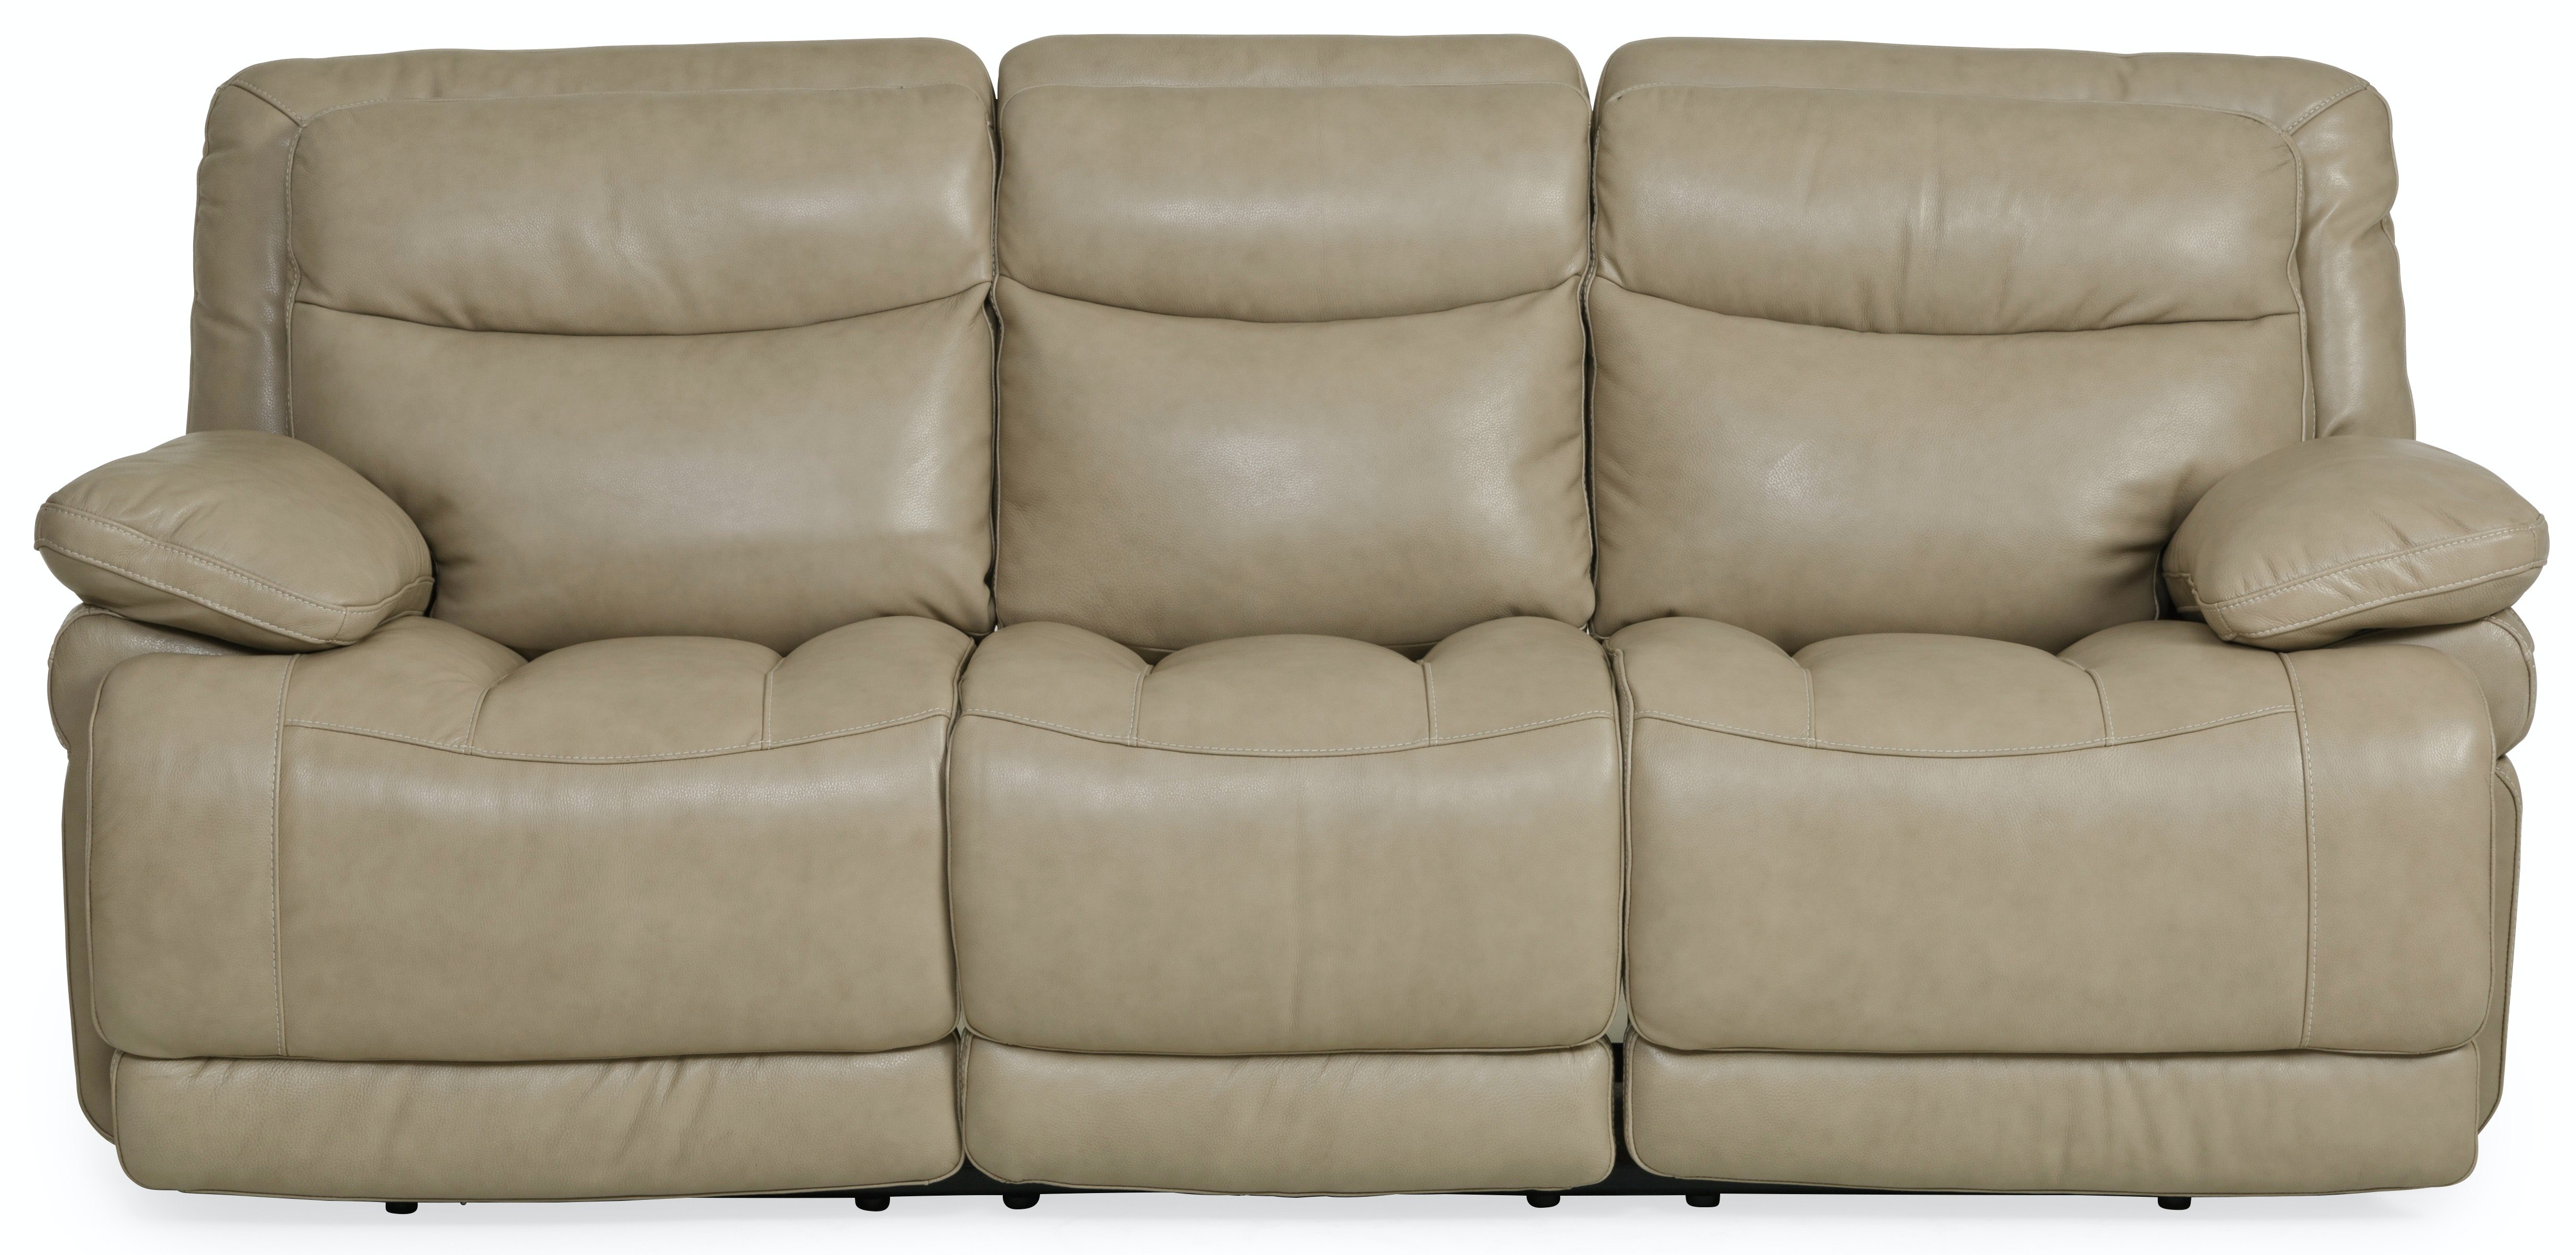 Longhorn Leather Power Reclining Sofa   WHEAT ST:436971